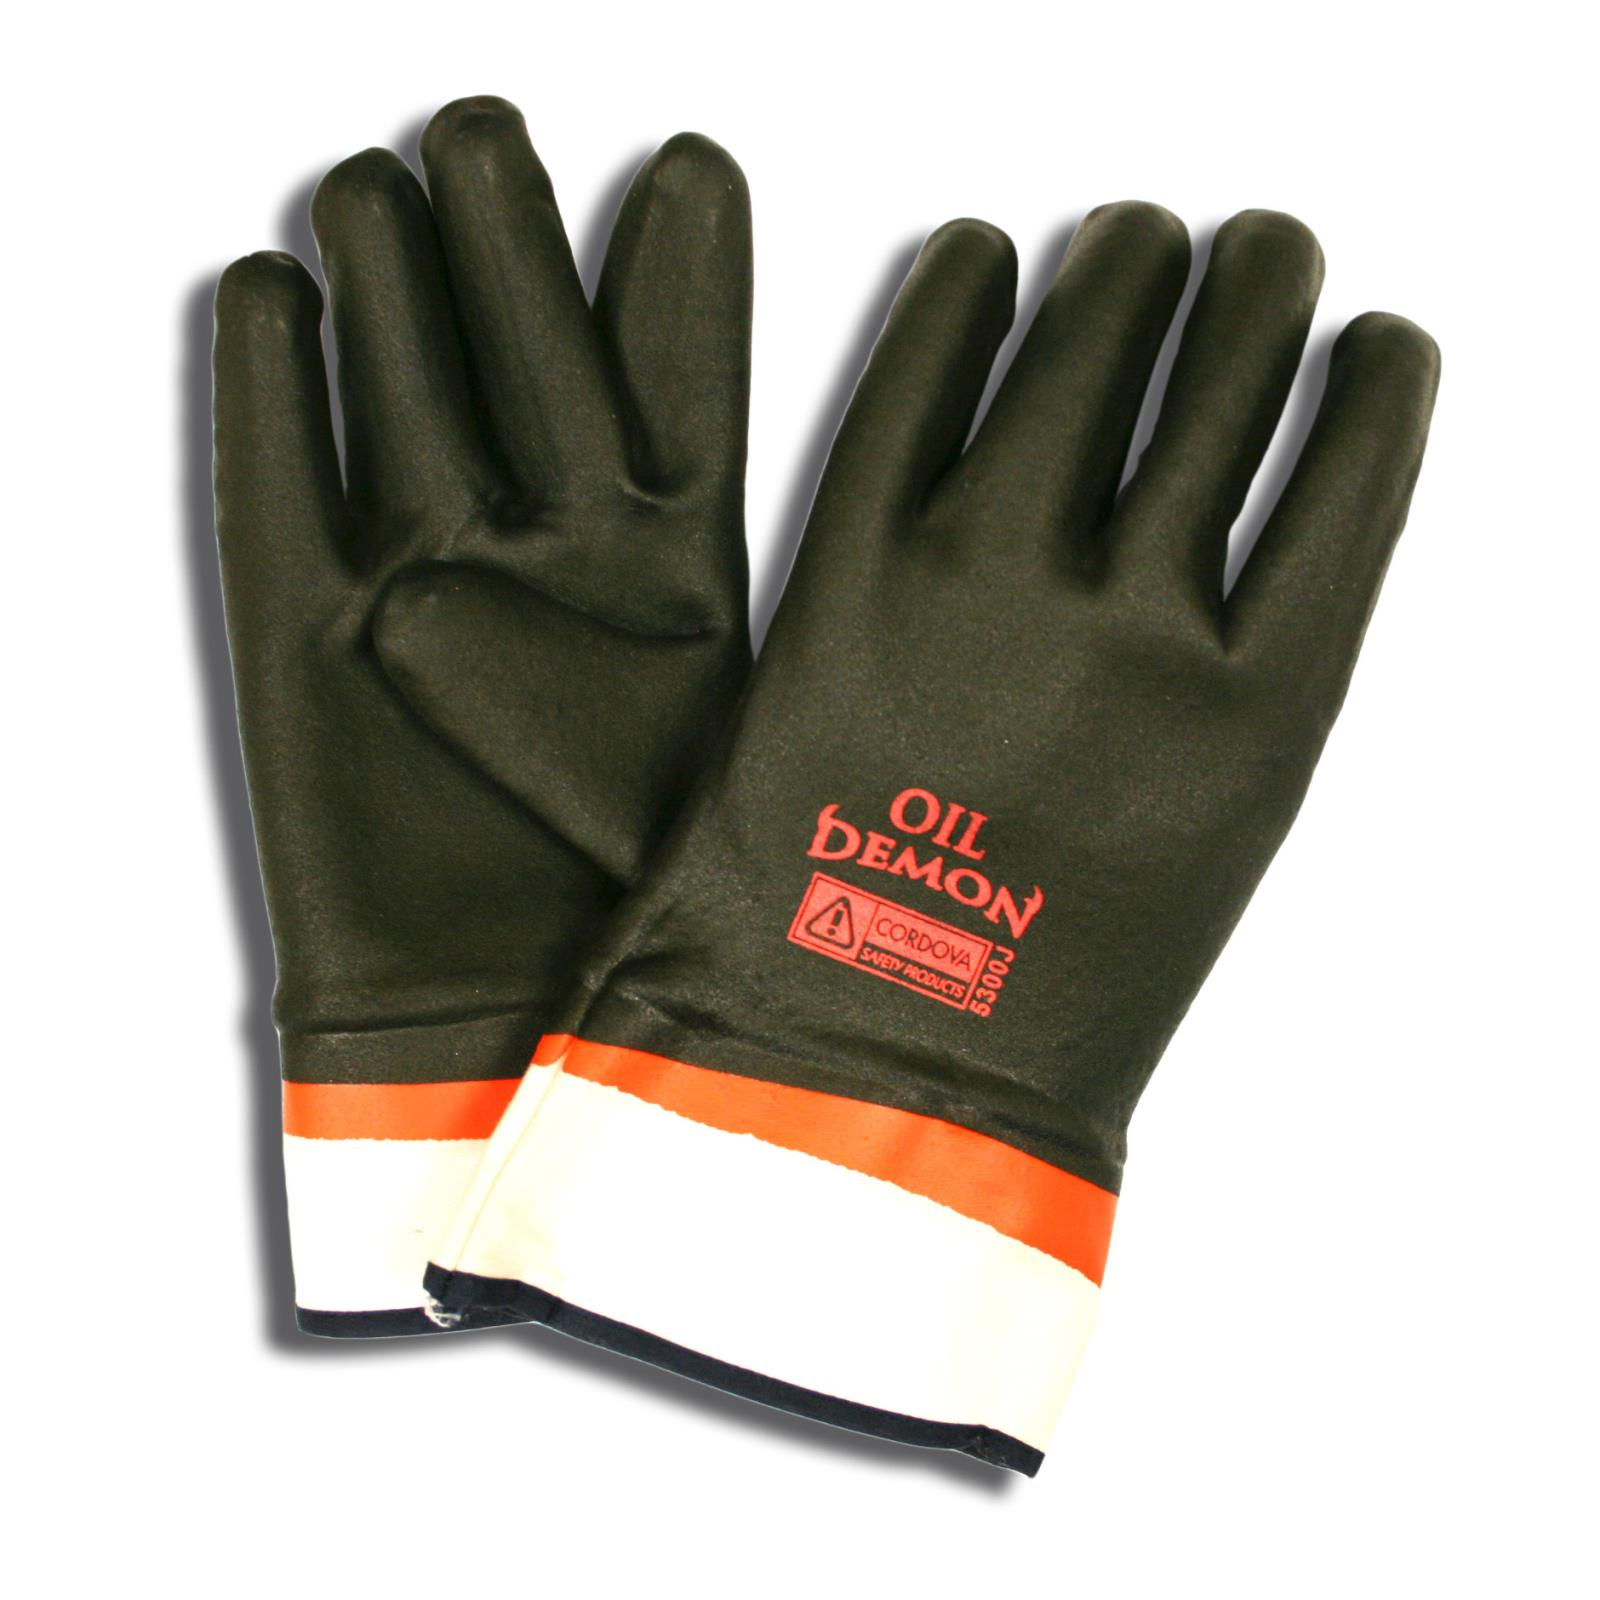 OIL DEMON™ Supported PVC Gloves